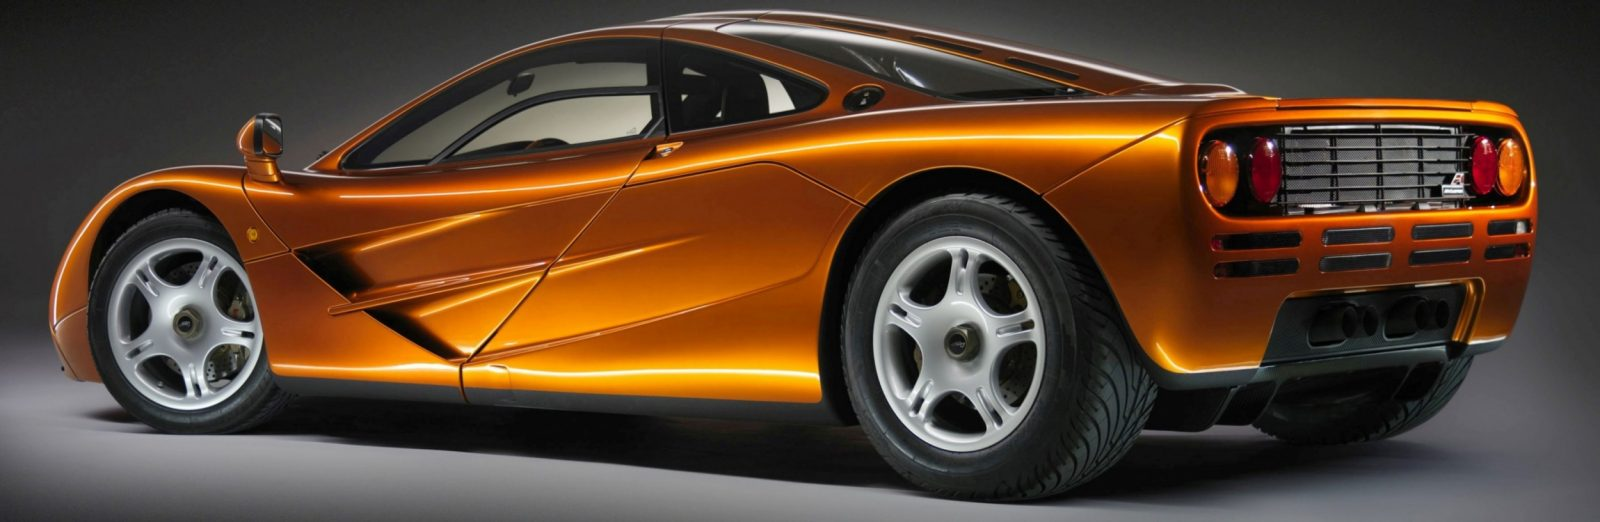 CarRevsDaily - Supercar Legends - McLaren F1 Wallpaper 39